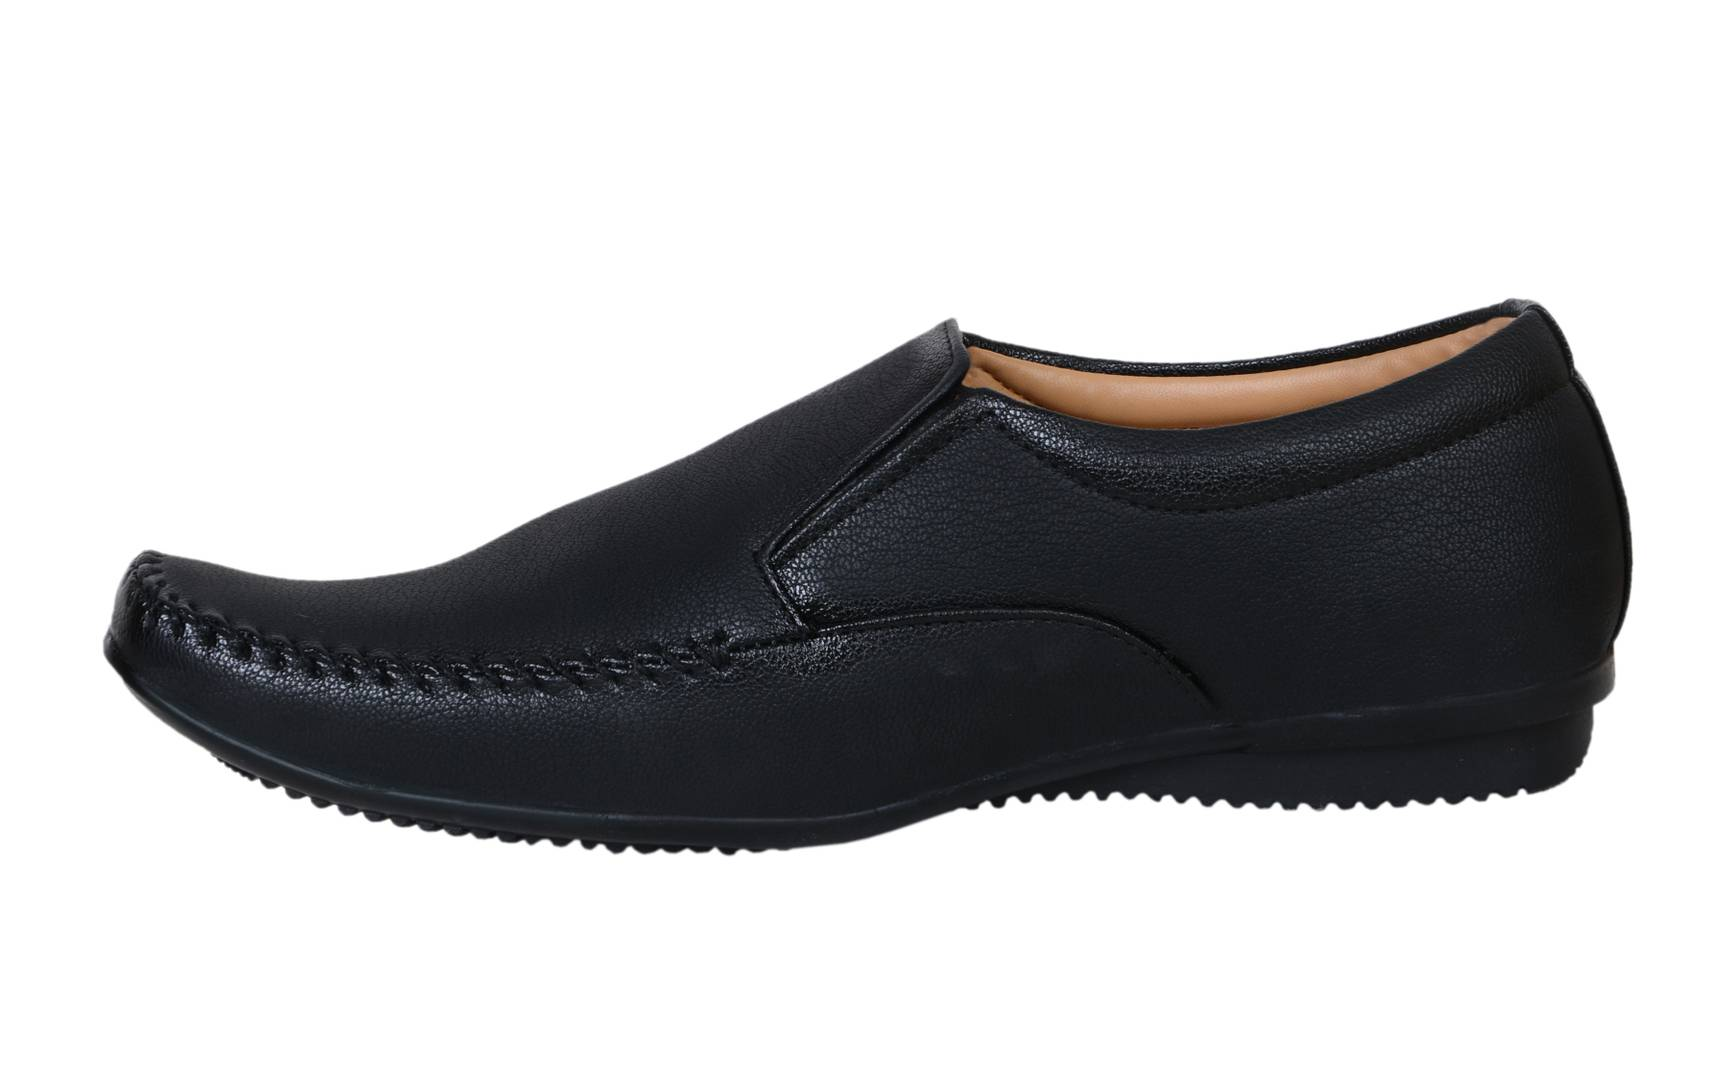 Black Solid Formal Slip On Shoes for Men